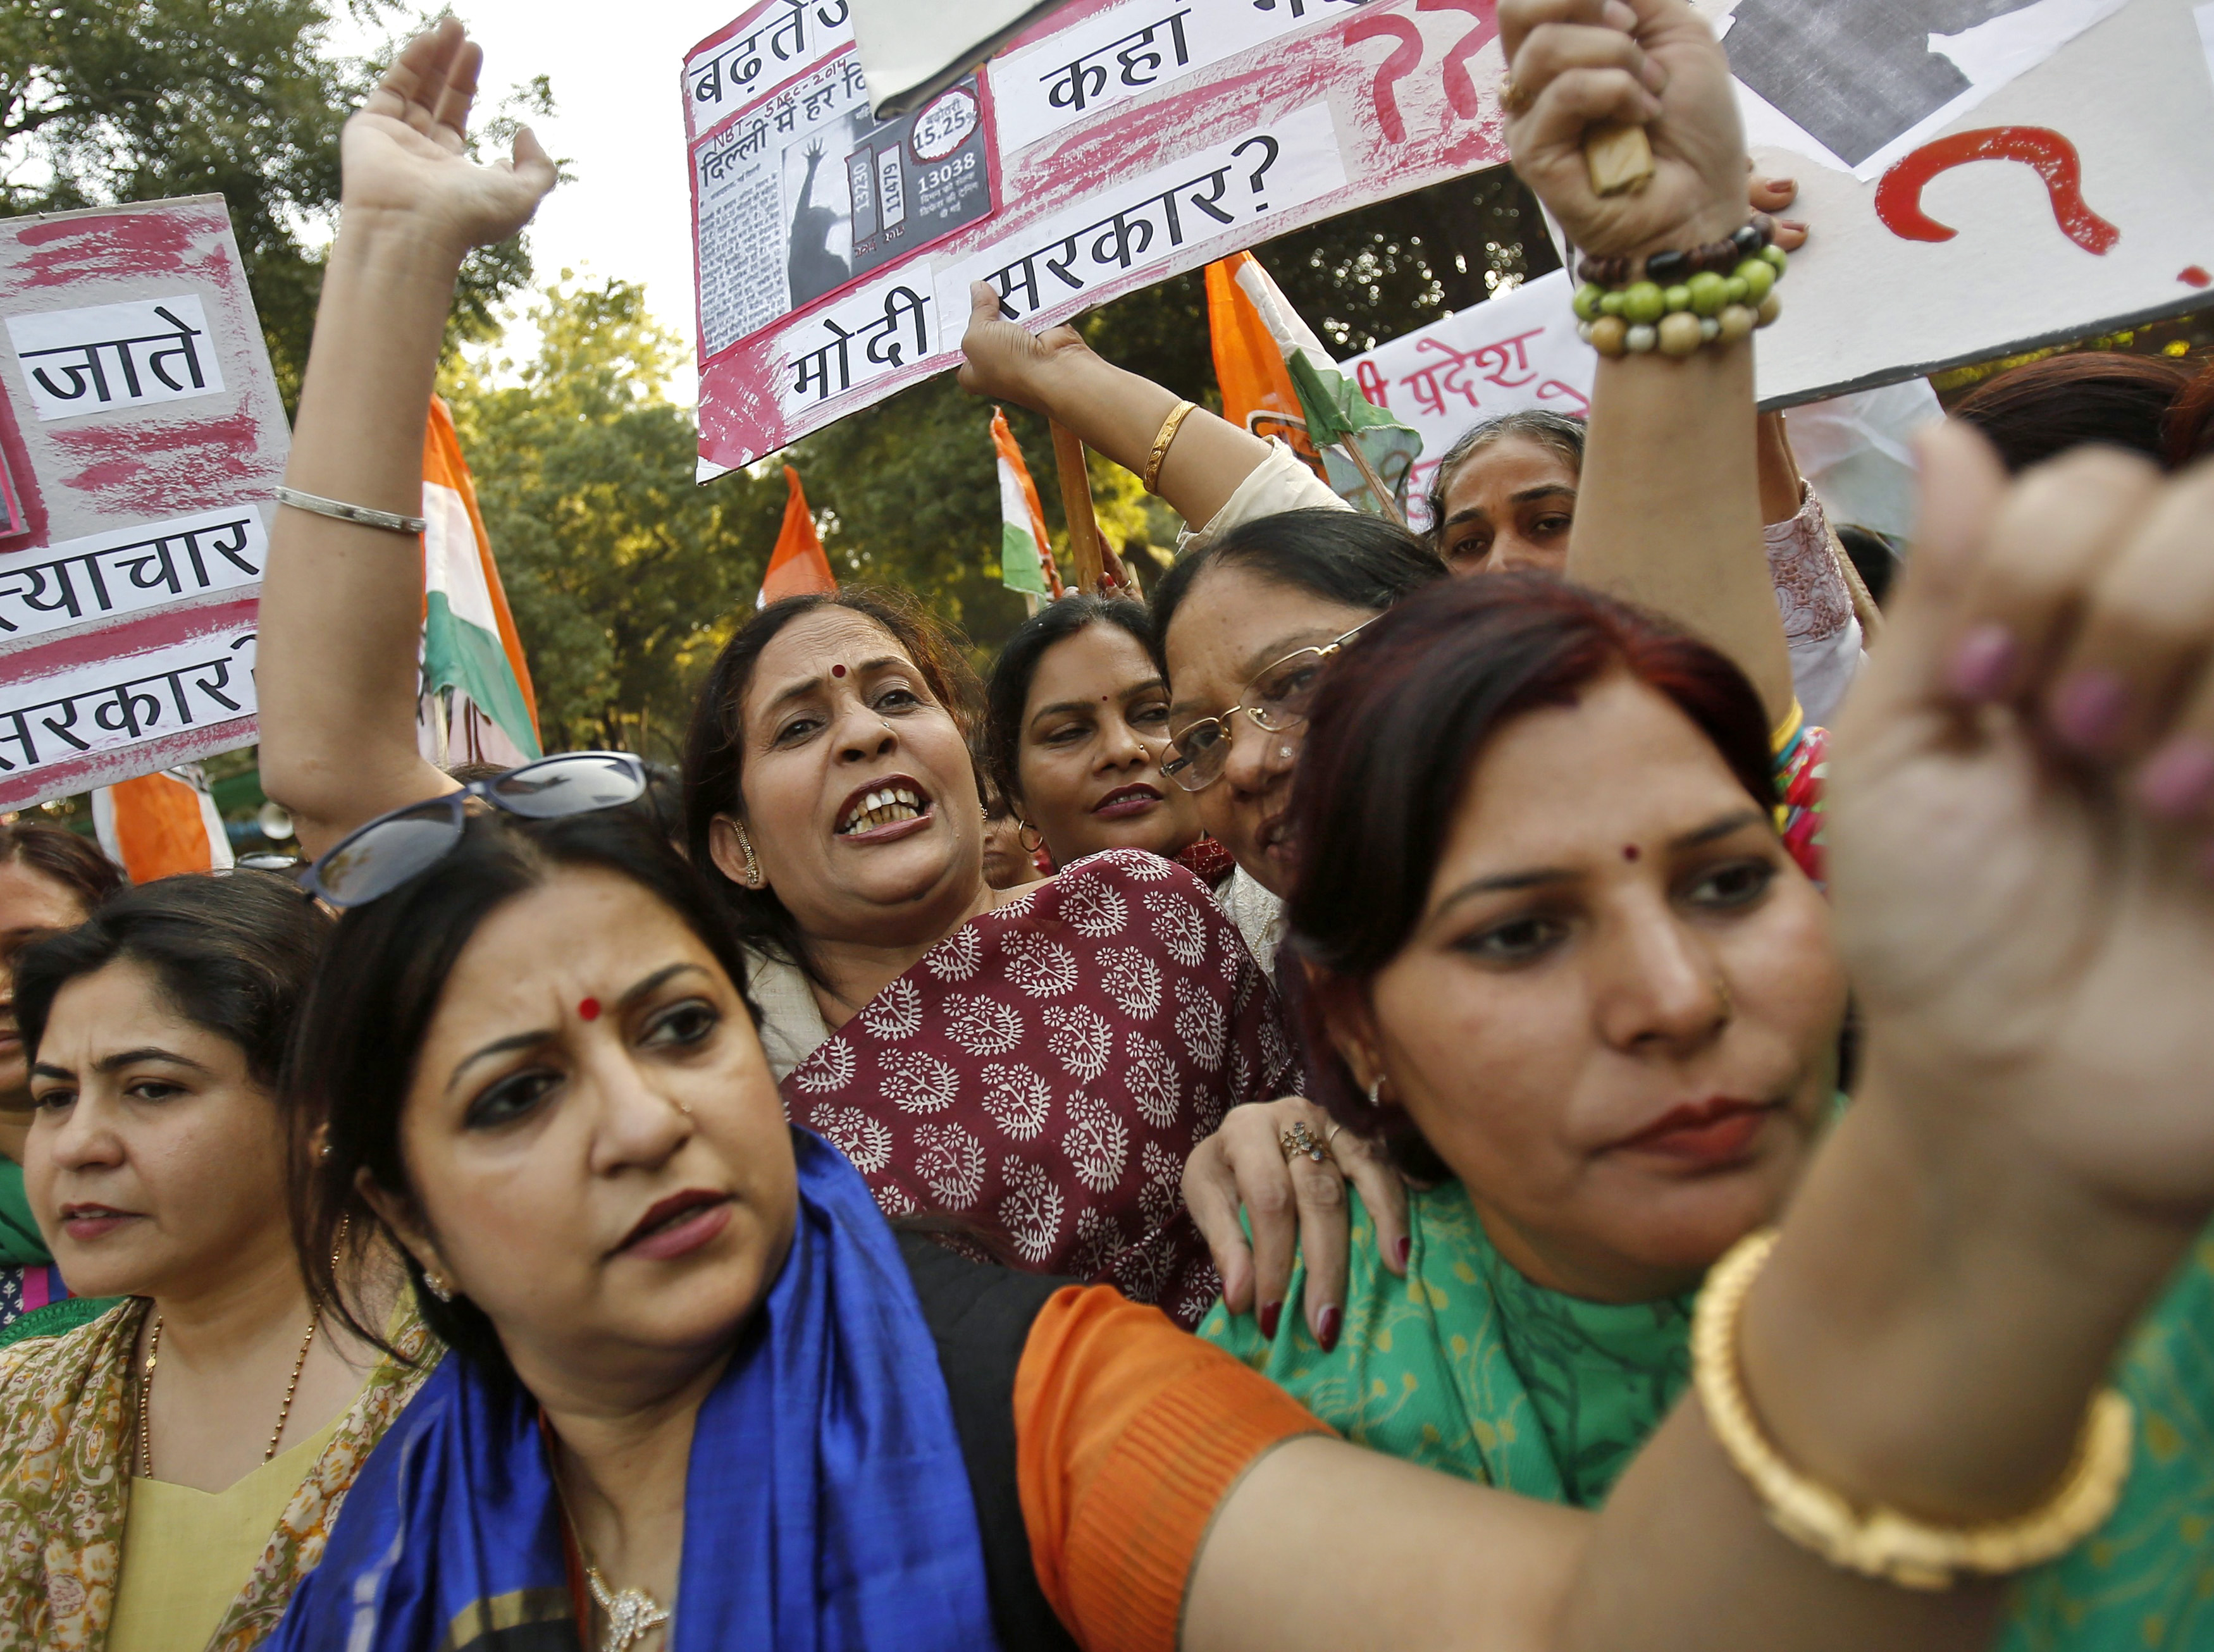 Members of All India Mahila Congress, women's wing of Congress party, shout slogans and carry placards during a protest against the rape of a female Uber passenger in New Delhi on Dec. 8, 2014